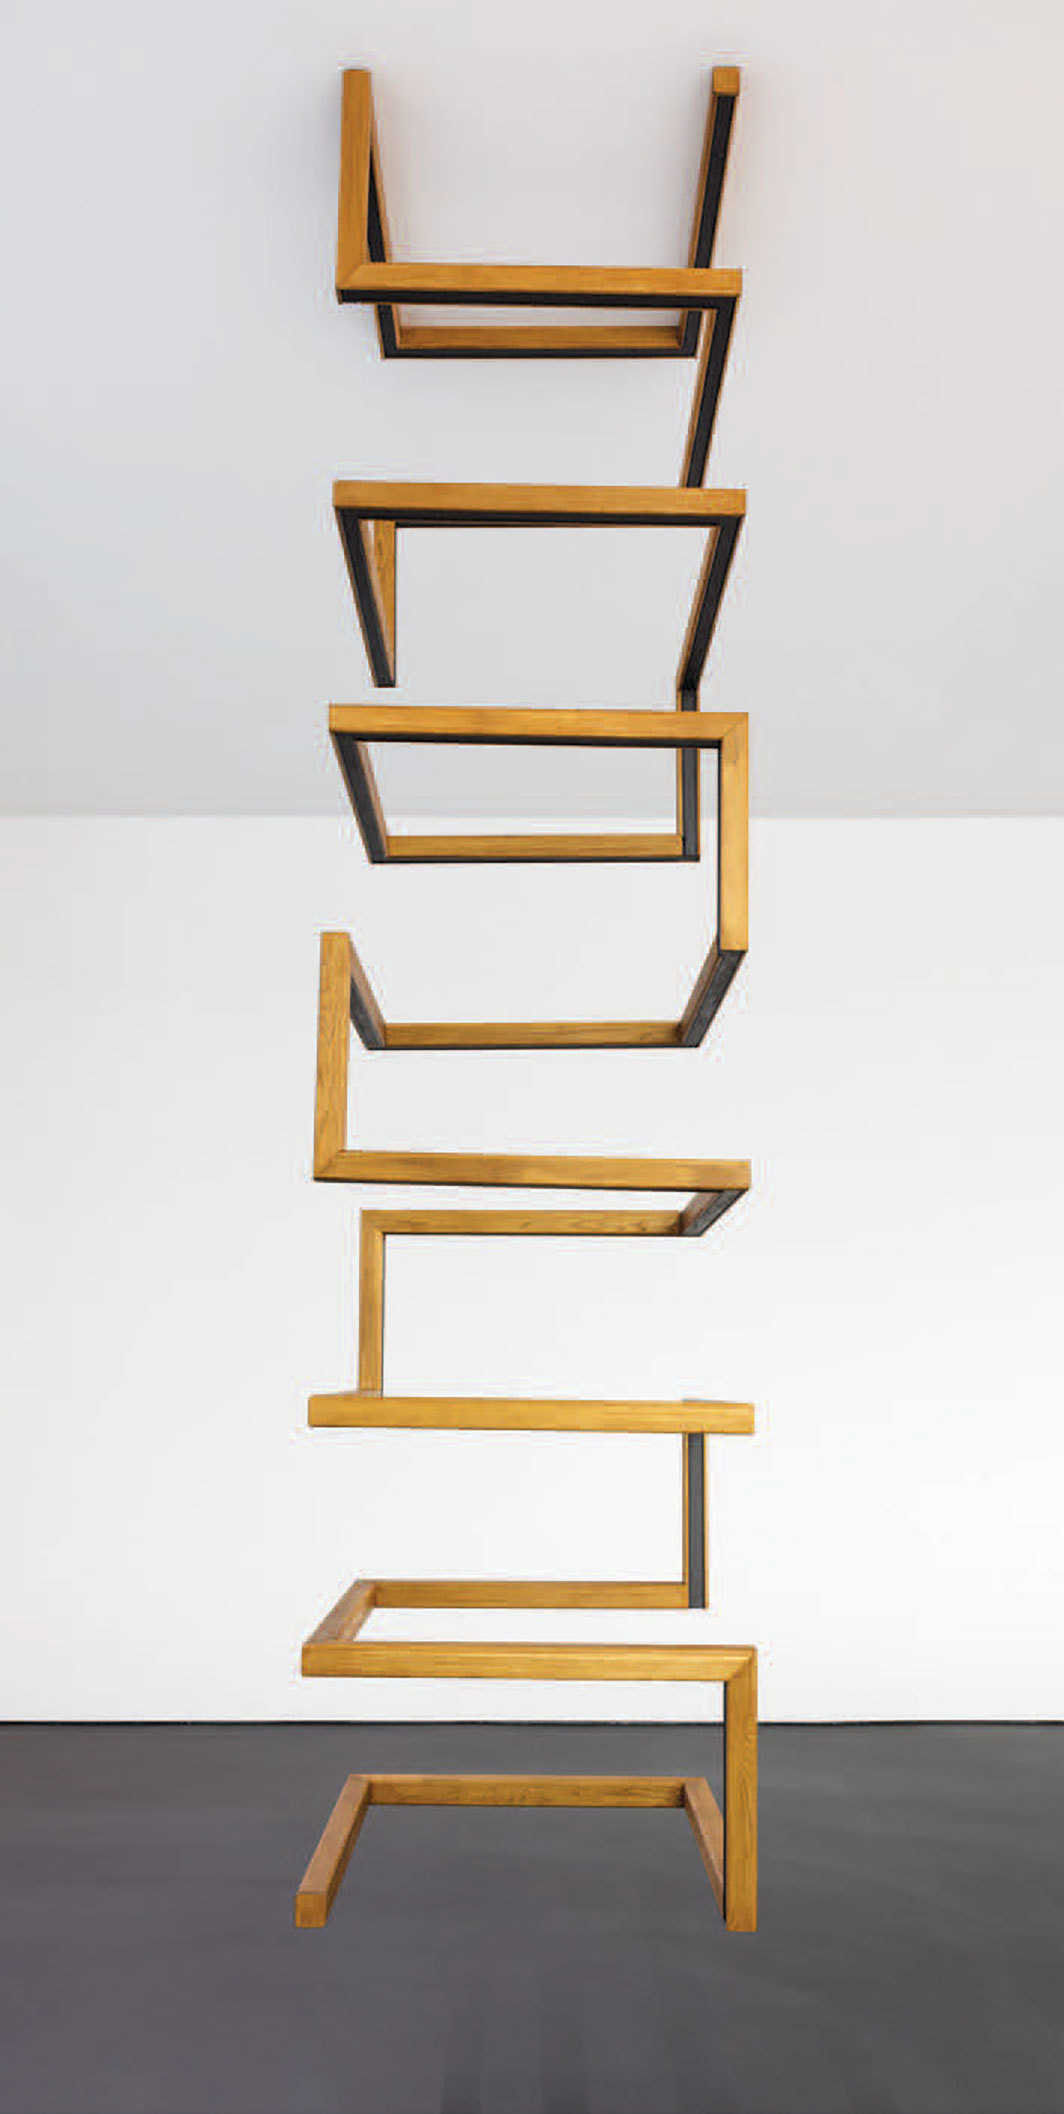 "Roman Ondak, Aeon, 2019, wood, metal, paint, 10' 8"" × 2' 7 1⁄2"" × 2' 7 1⁄2""."